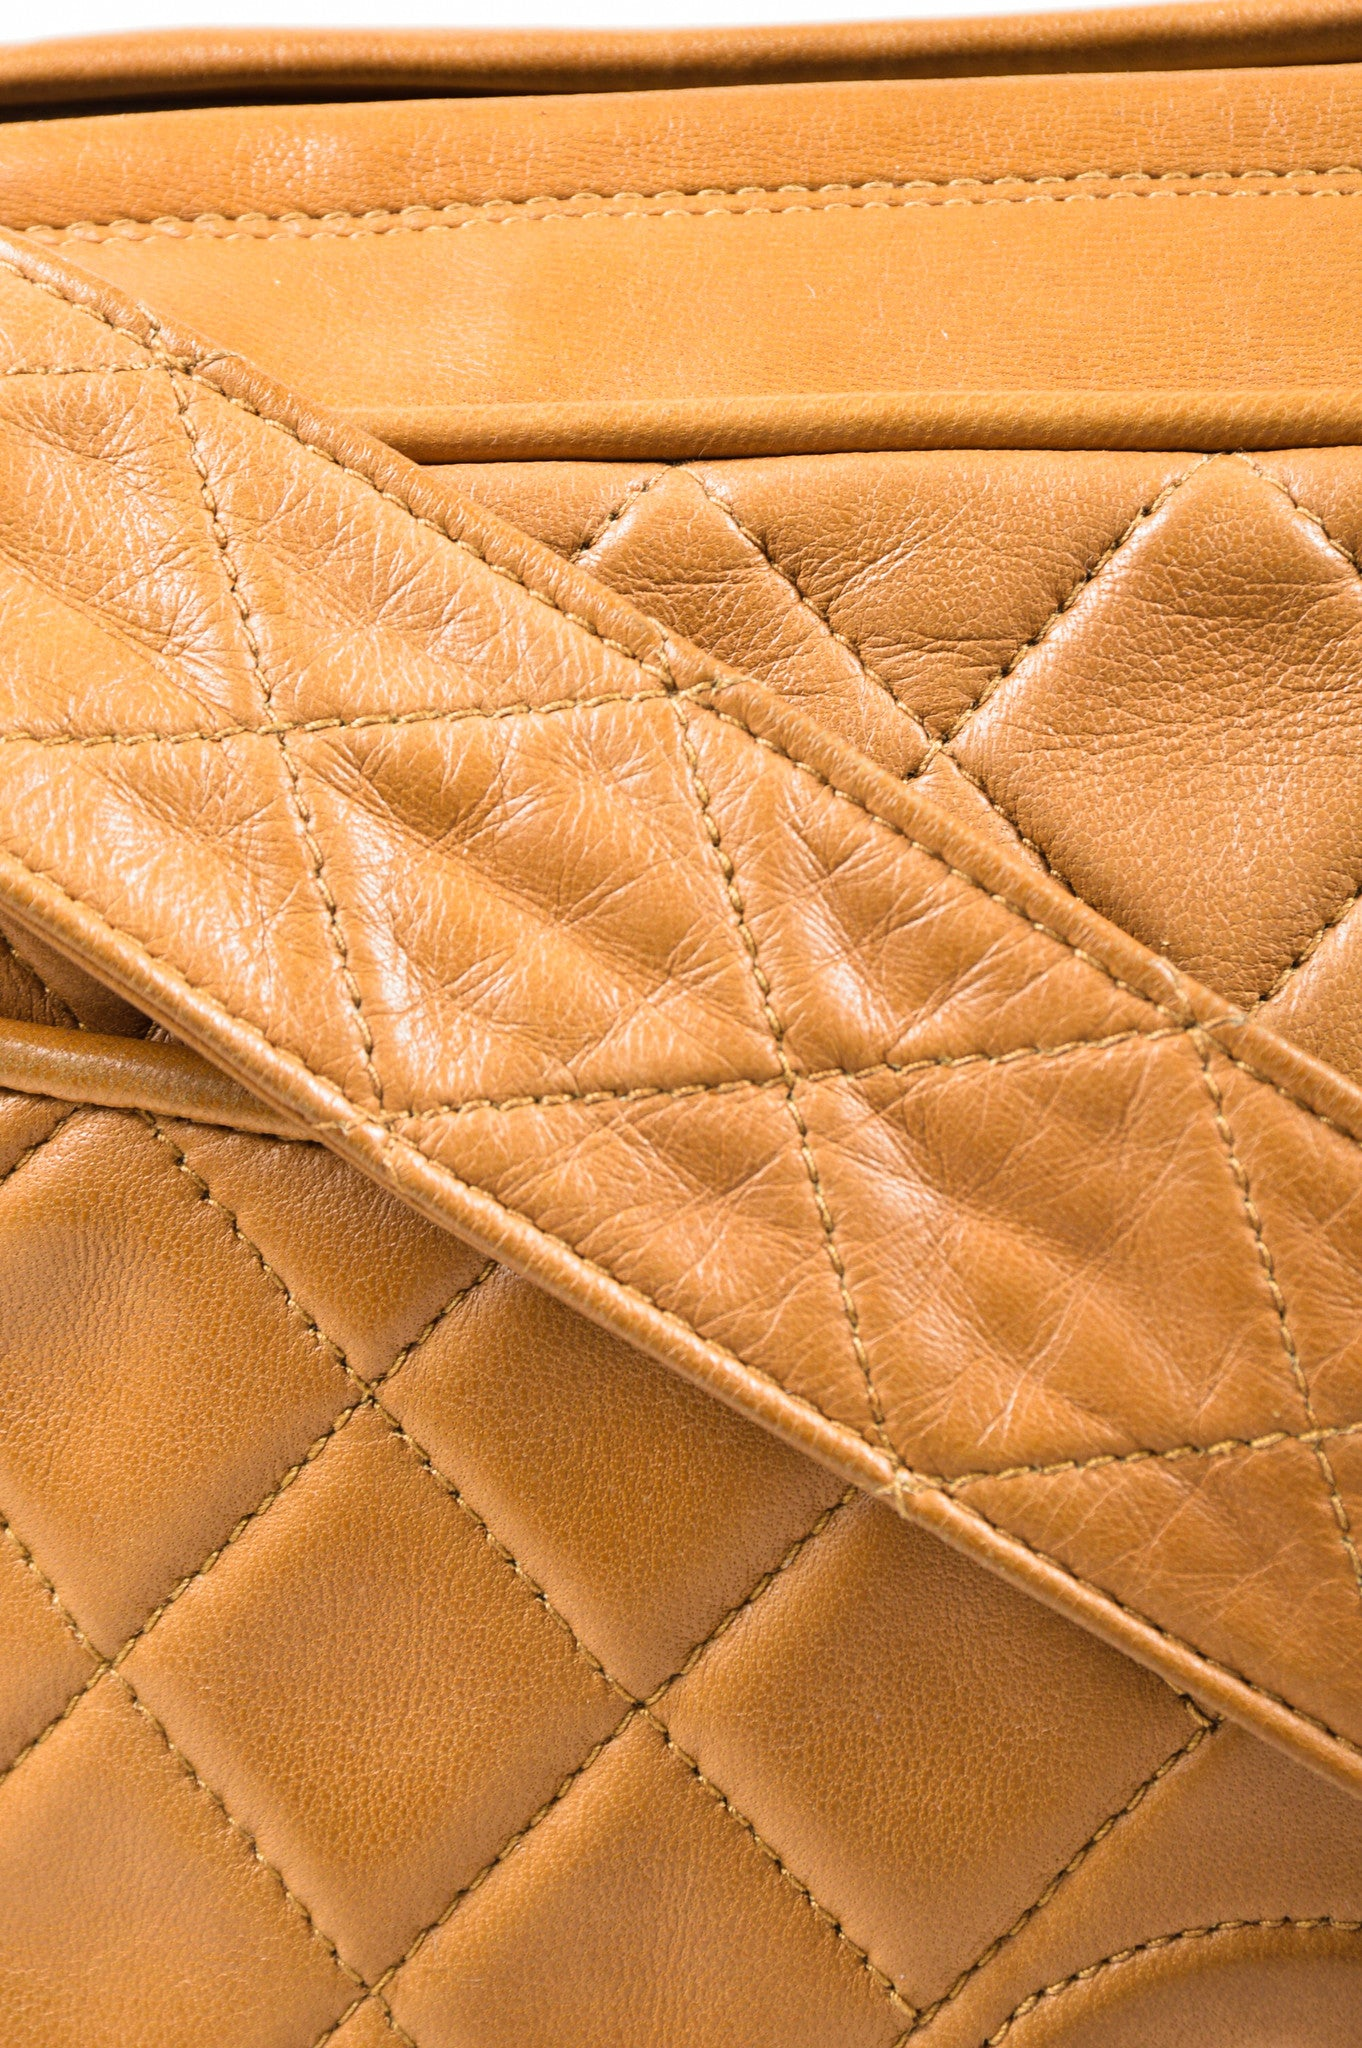 Caramel Tan Chanel Lambskin Leather Quilted 'CC' Tassel Shoulder Bag Detail 2